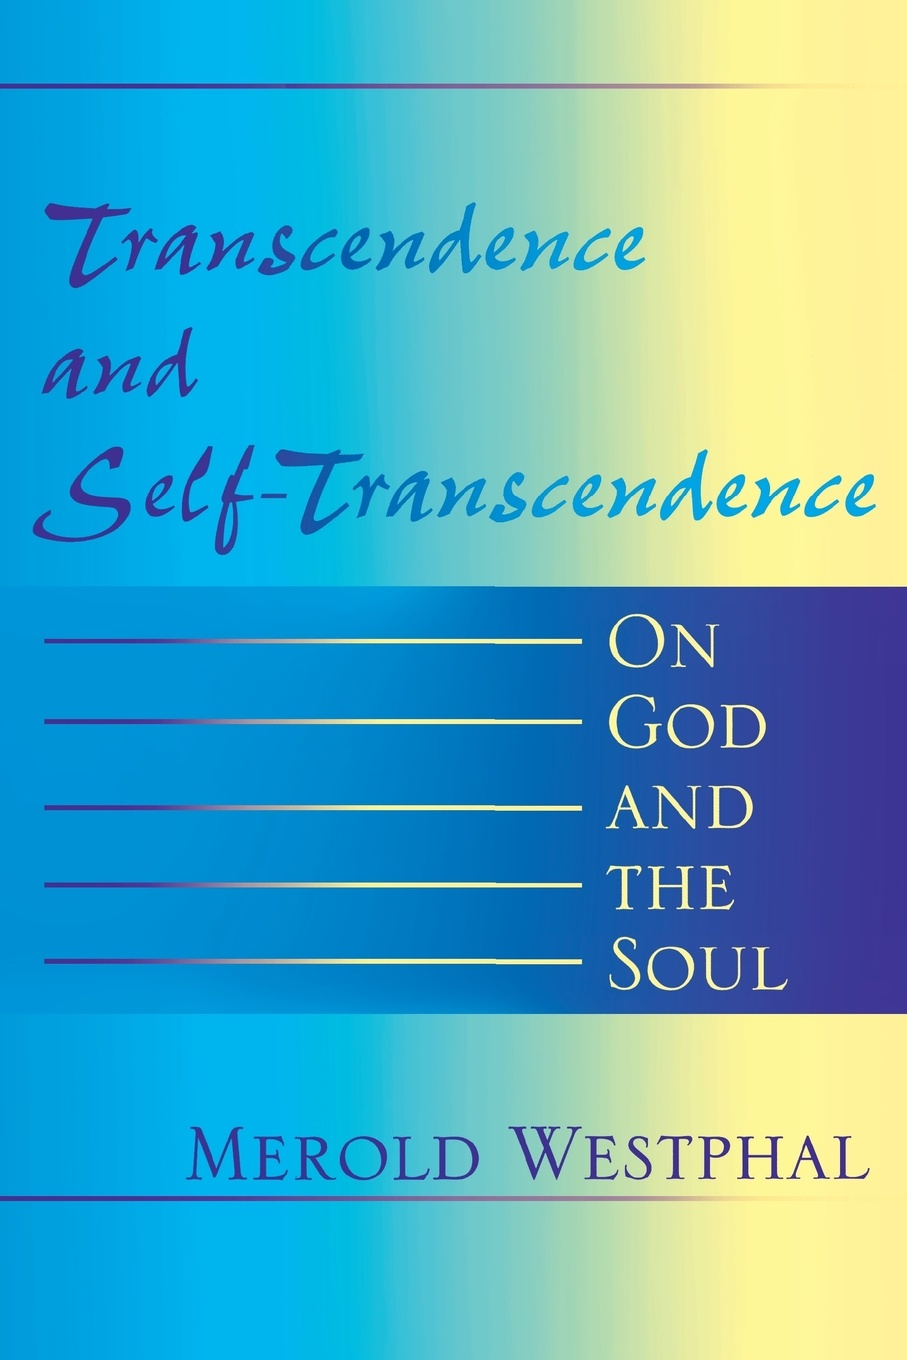 Merold E Westphal Transcendence and Self-Transcendence. On God and the Soul william blake on self and soul